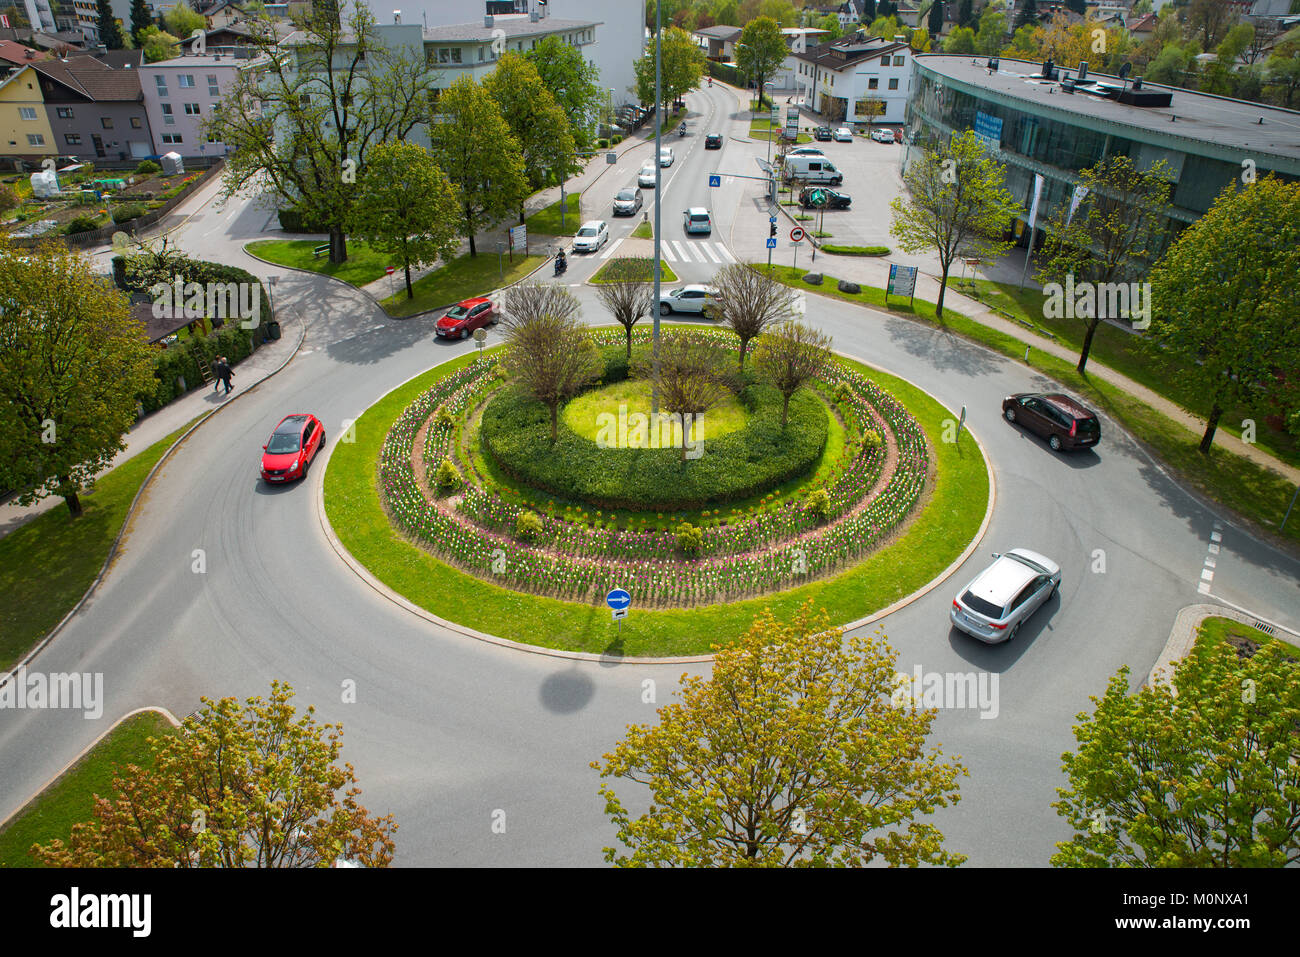 Roundabout federal highway B171,junction motorway access,federal highway B171,junction,Schwaz,Tyrol,Austria - Stock Image